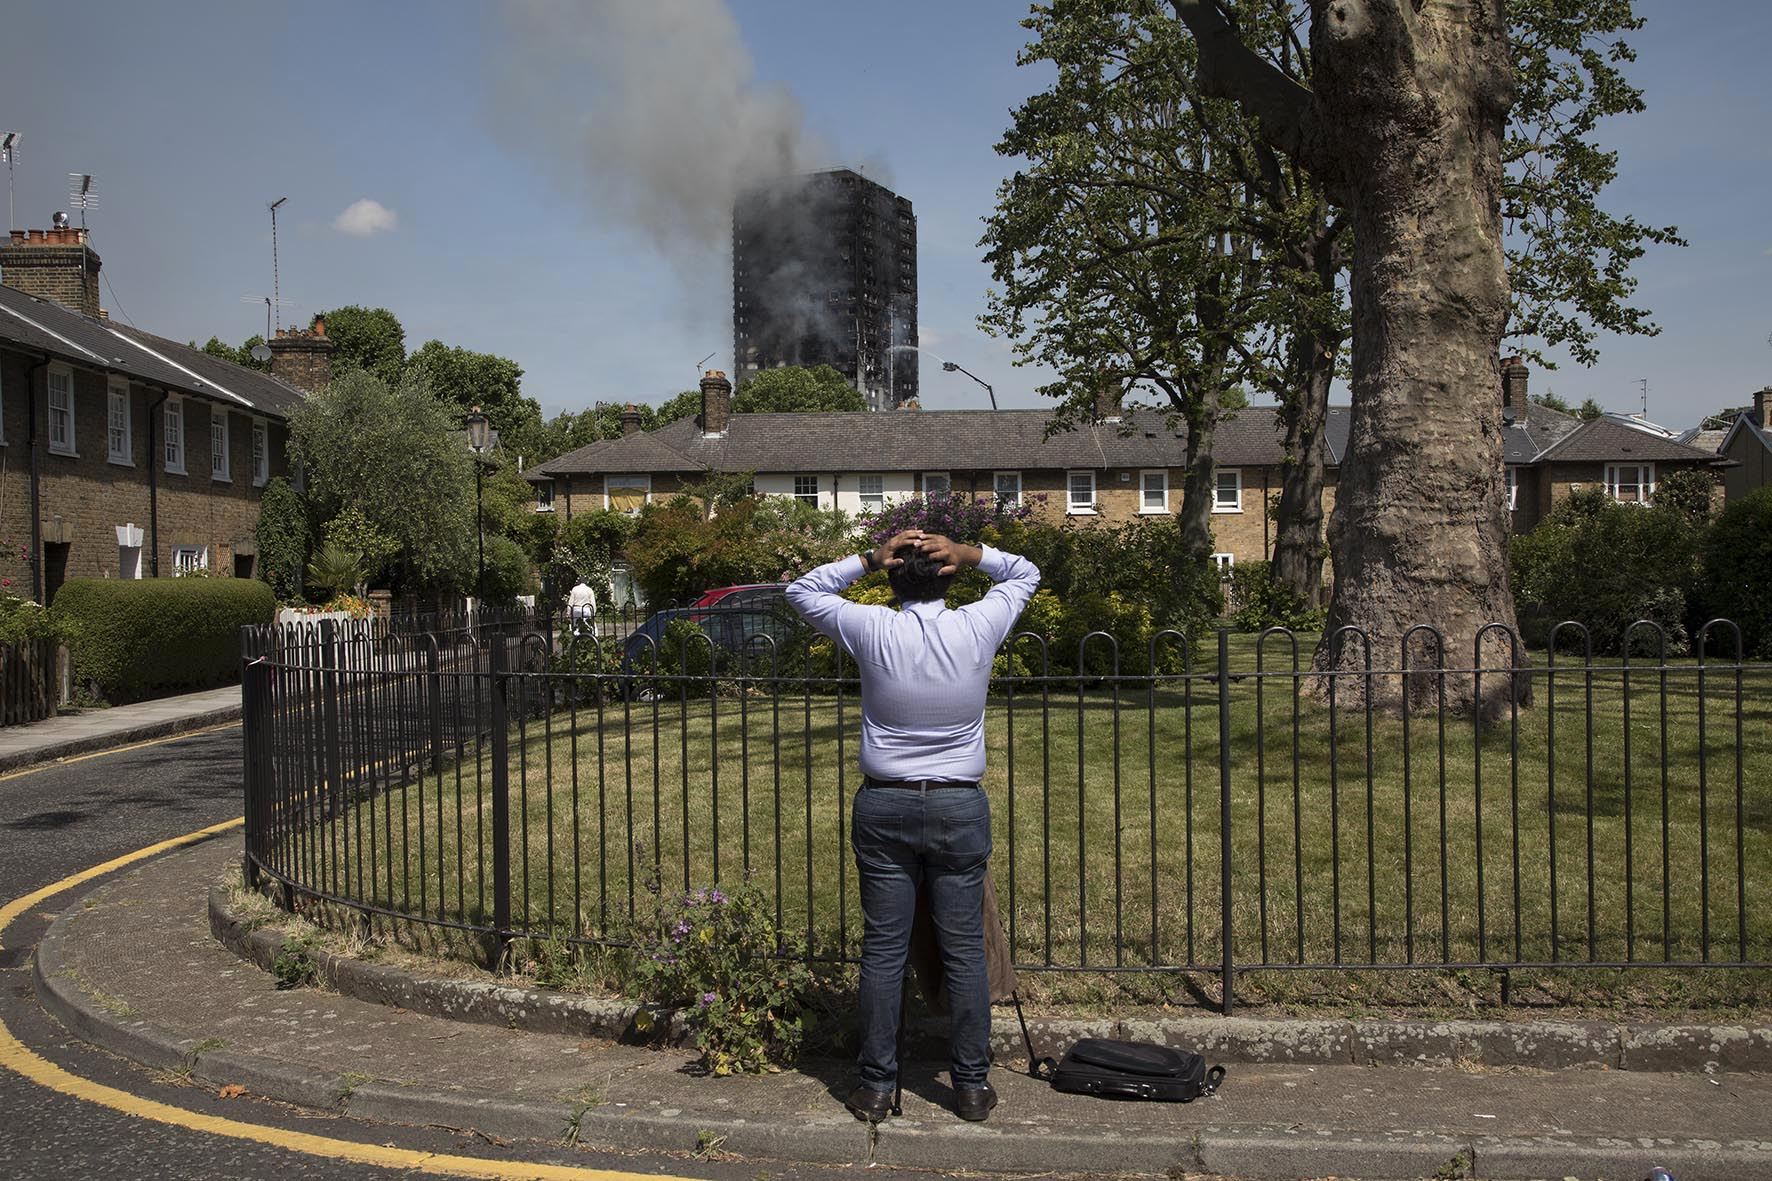 Grenfell Tower fire, West London 14th June 2017.